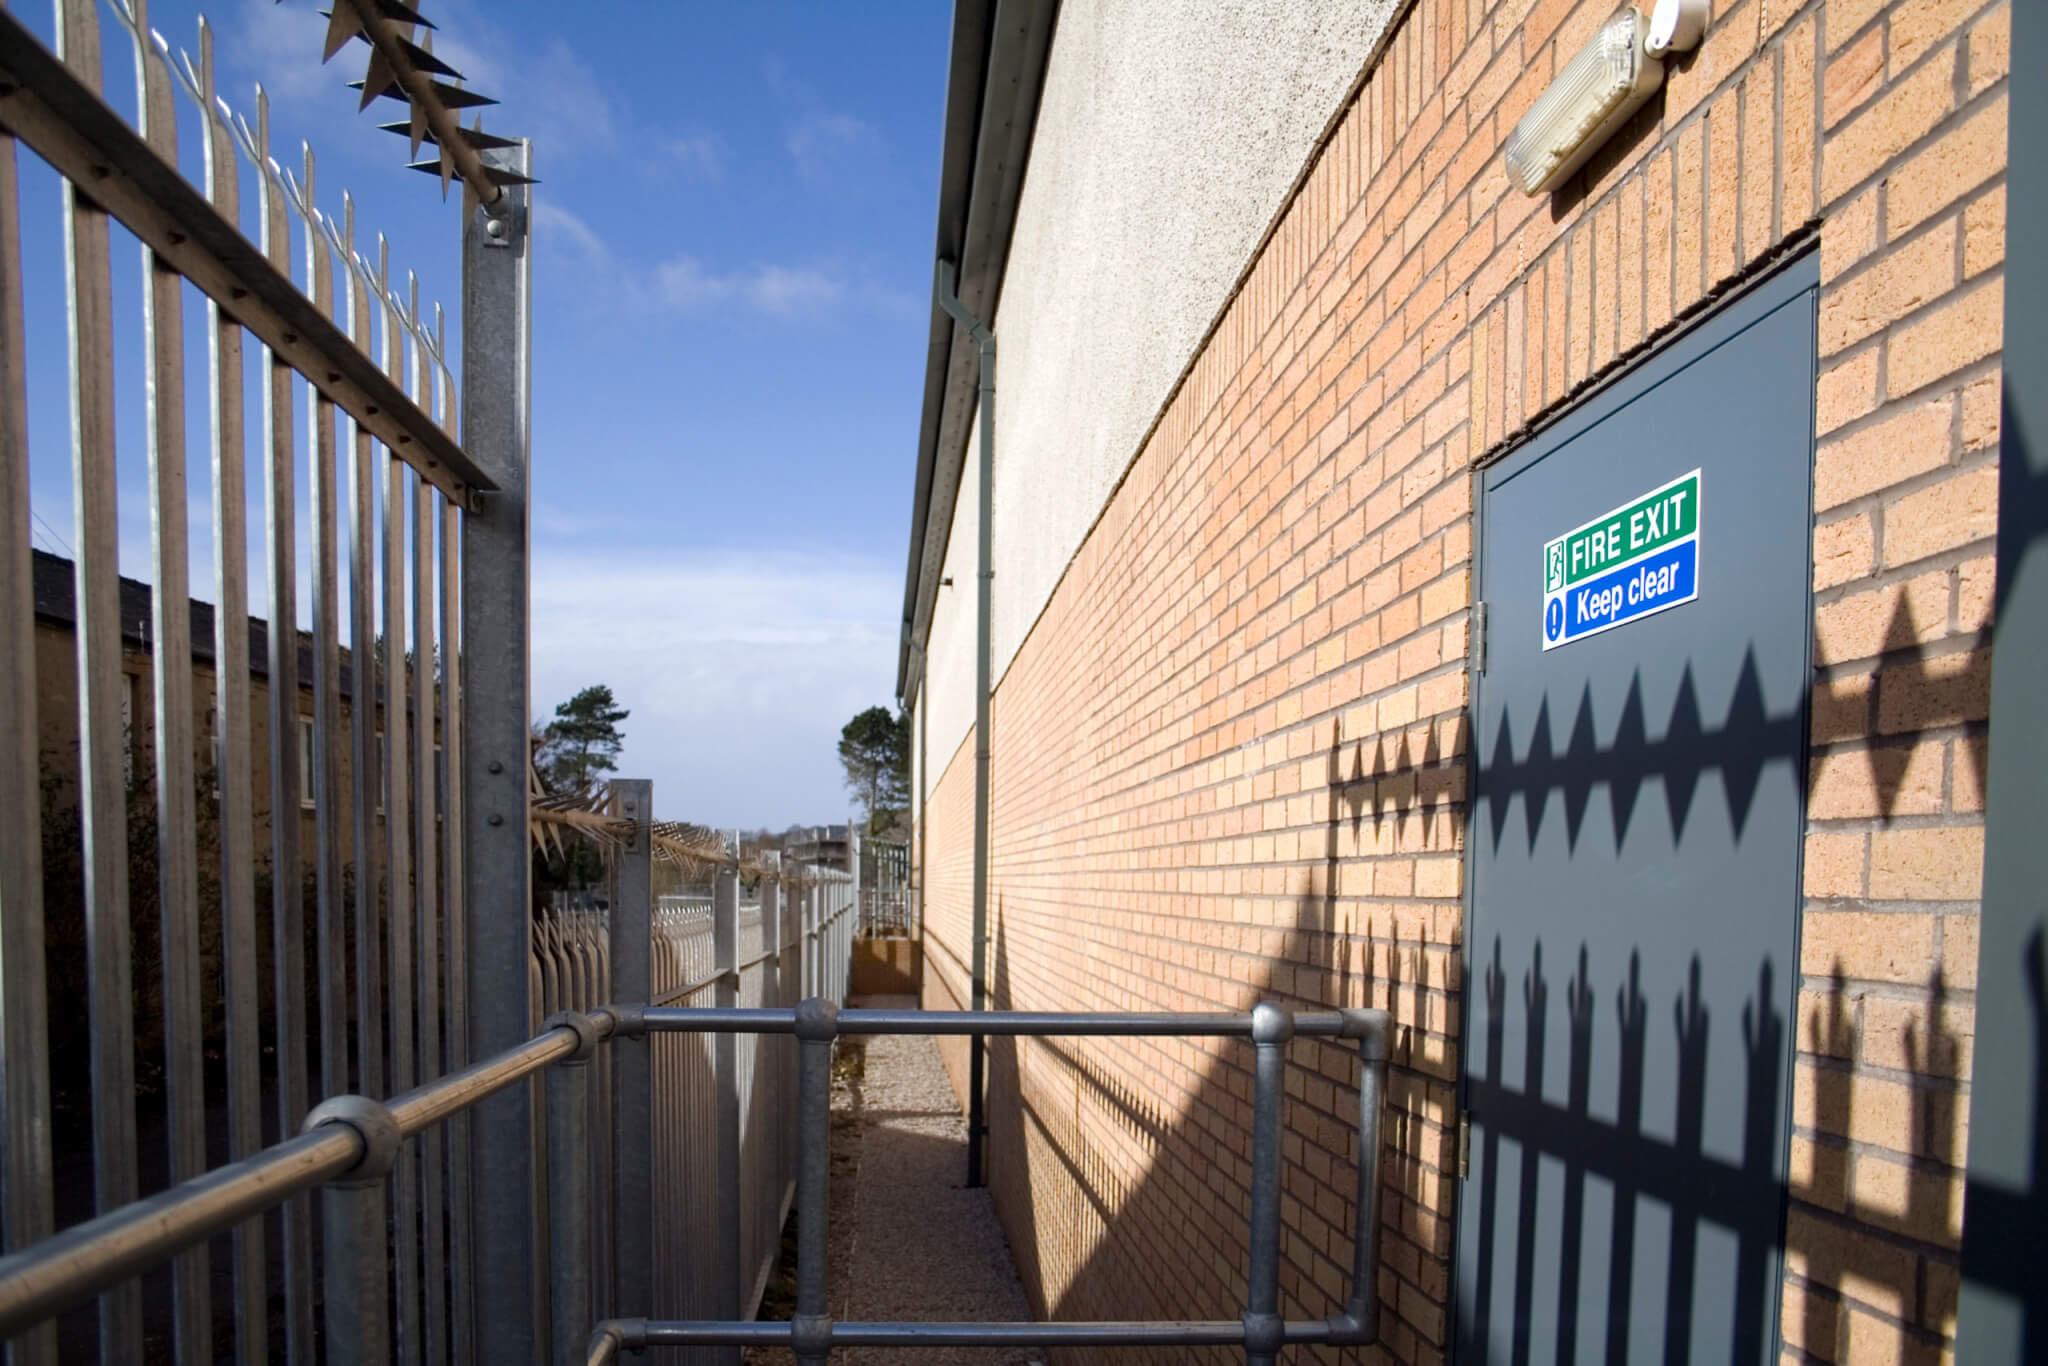 security fence around industrial building with fire exit